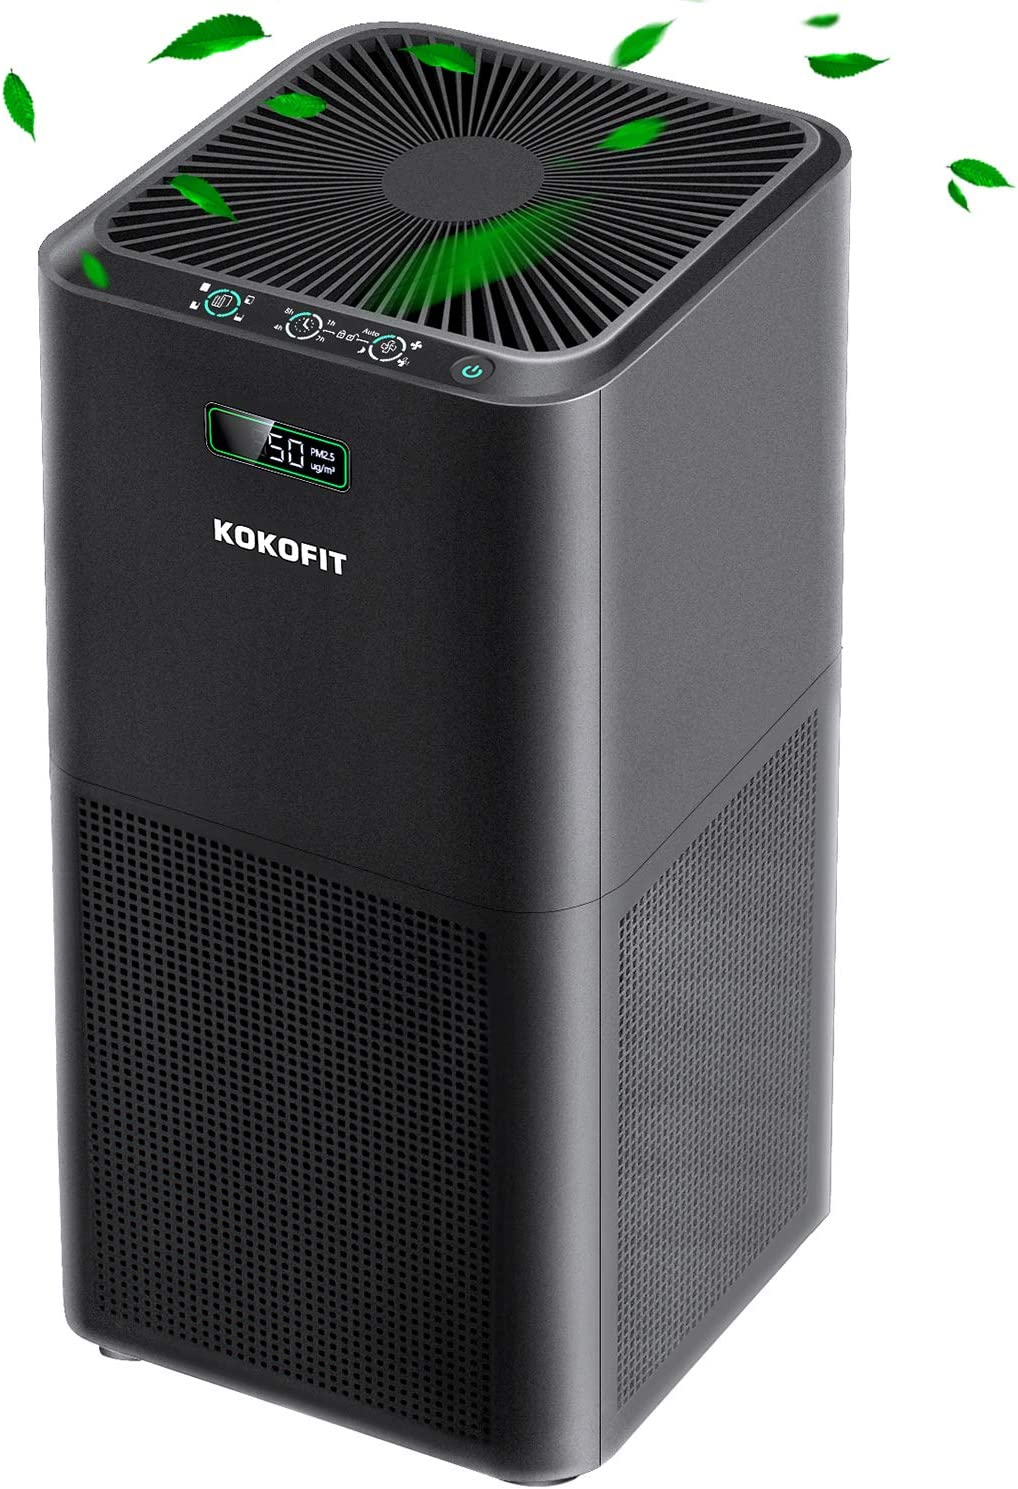 Kokofit Air Purifiers for Home Large Room with True HEPA Filter CADR 320, Quite Air Cleaner Eliminates 99.97% Allergies and Pets Hair Dust Odor Smoke Mold Pollen with Air Quality Monitor Sleep Mode